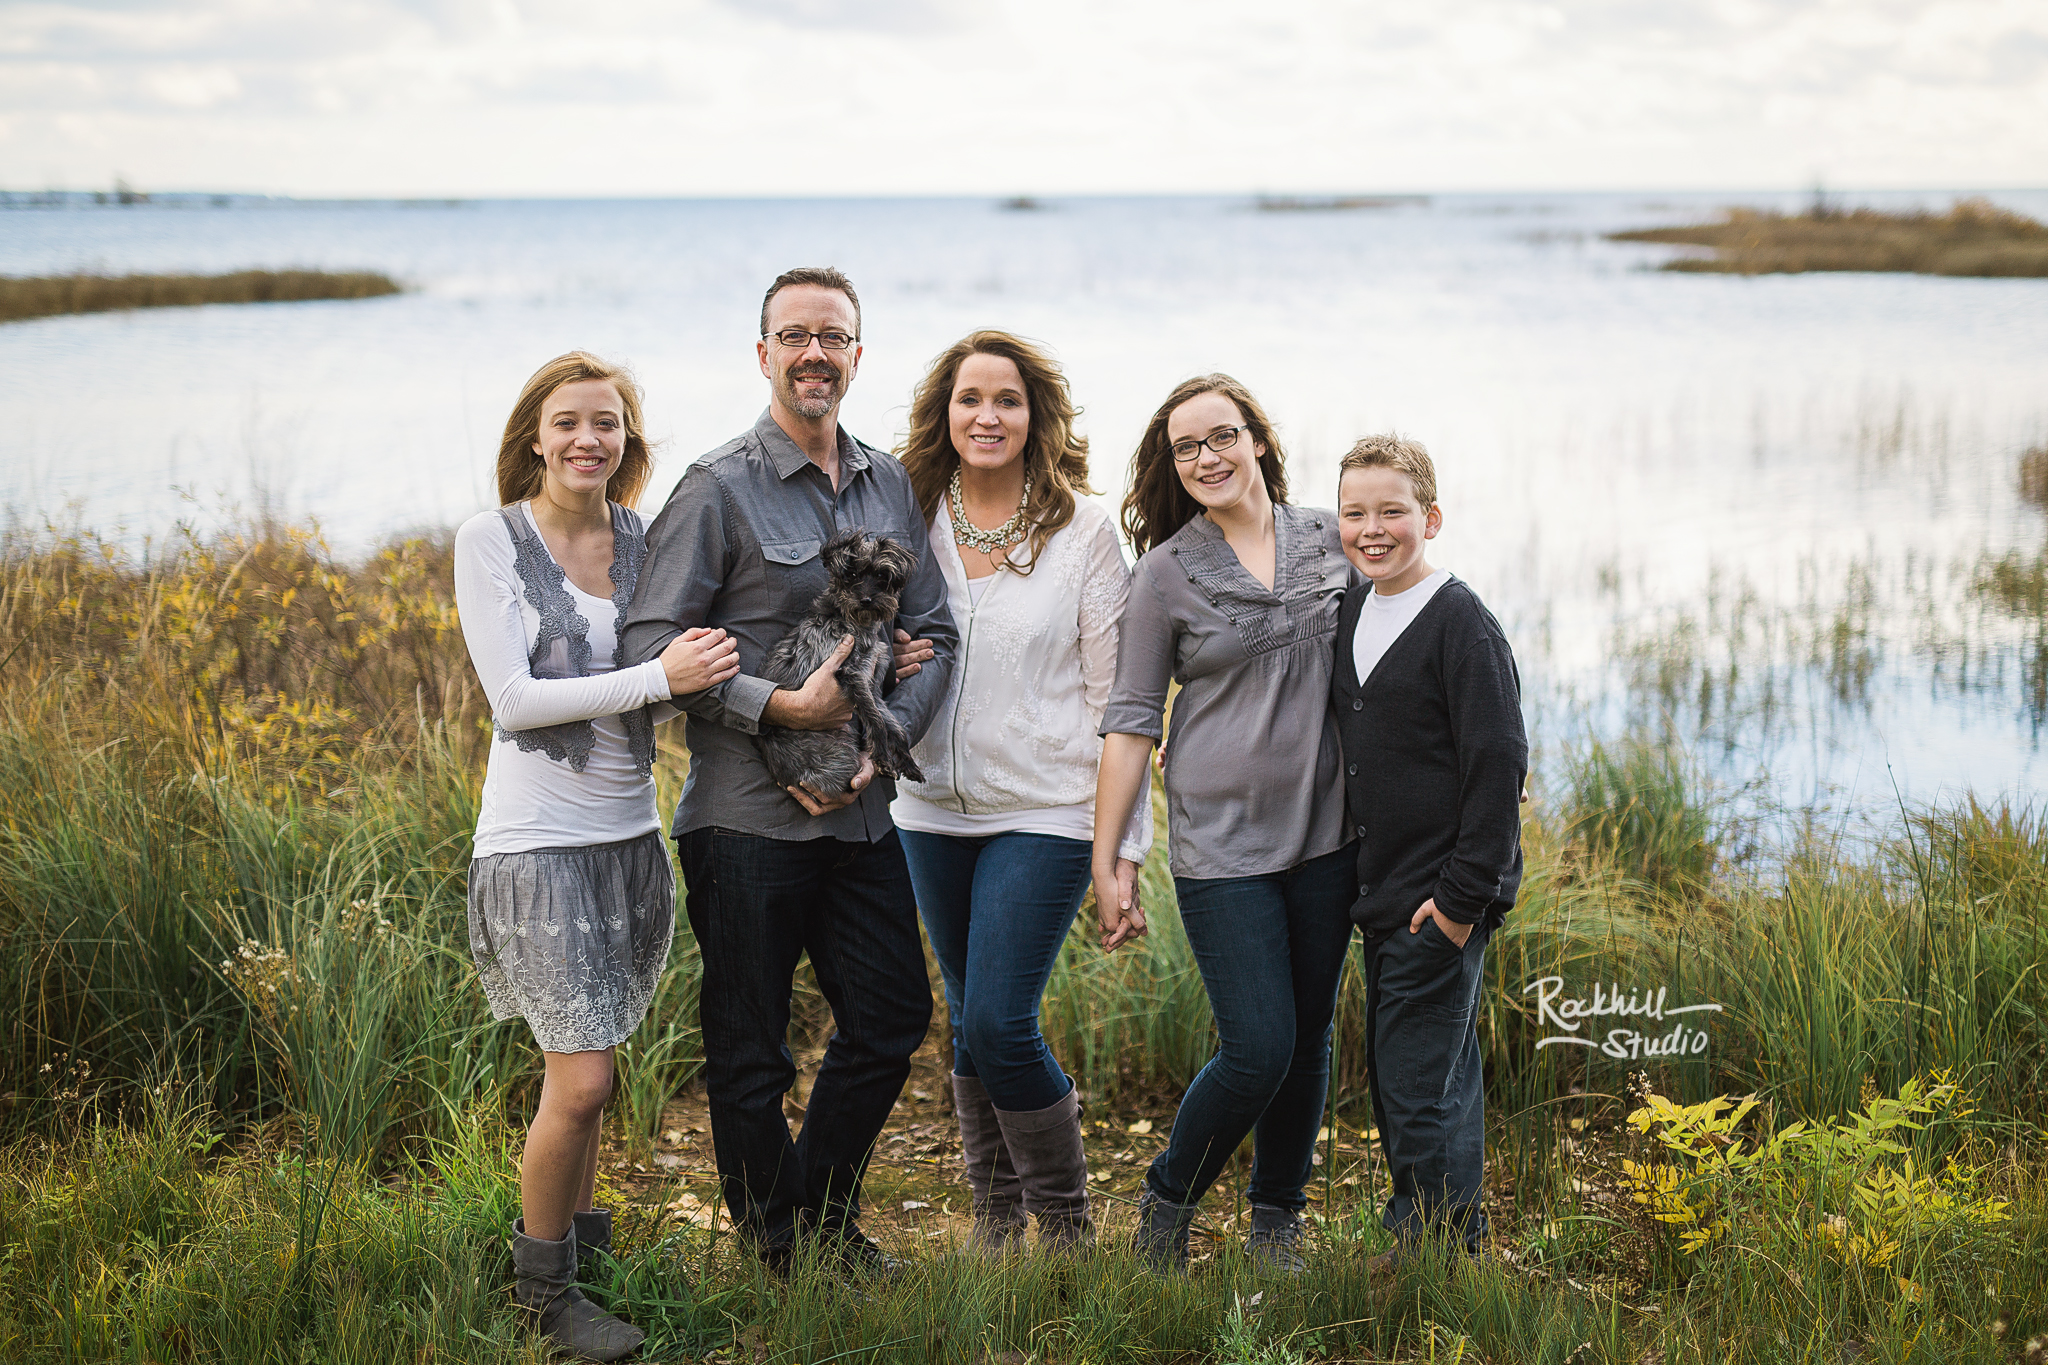 escanaba-family-photographer-rockhill-upper-peninsula-michigan-1a.jpg